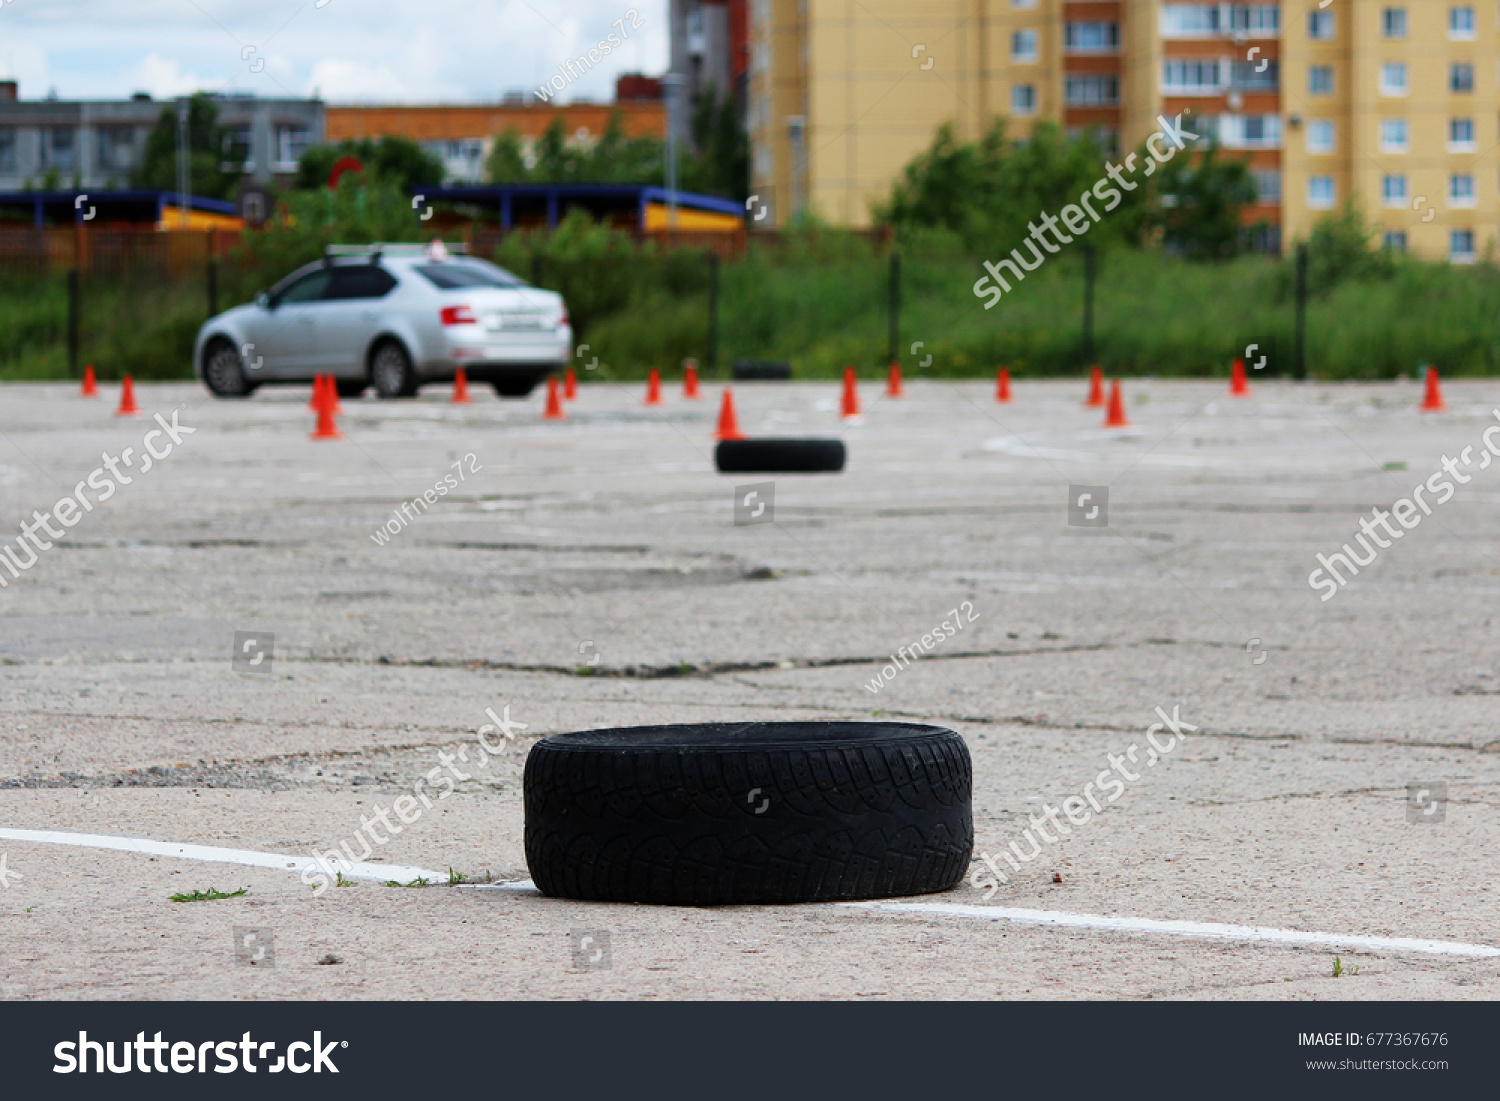 many plastic signaling traffic cones and Rubber tires from wheels are on site for training where drivers learn to ride on cars. #677367676